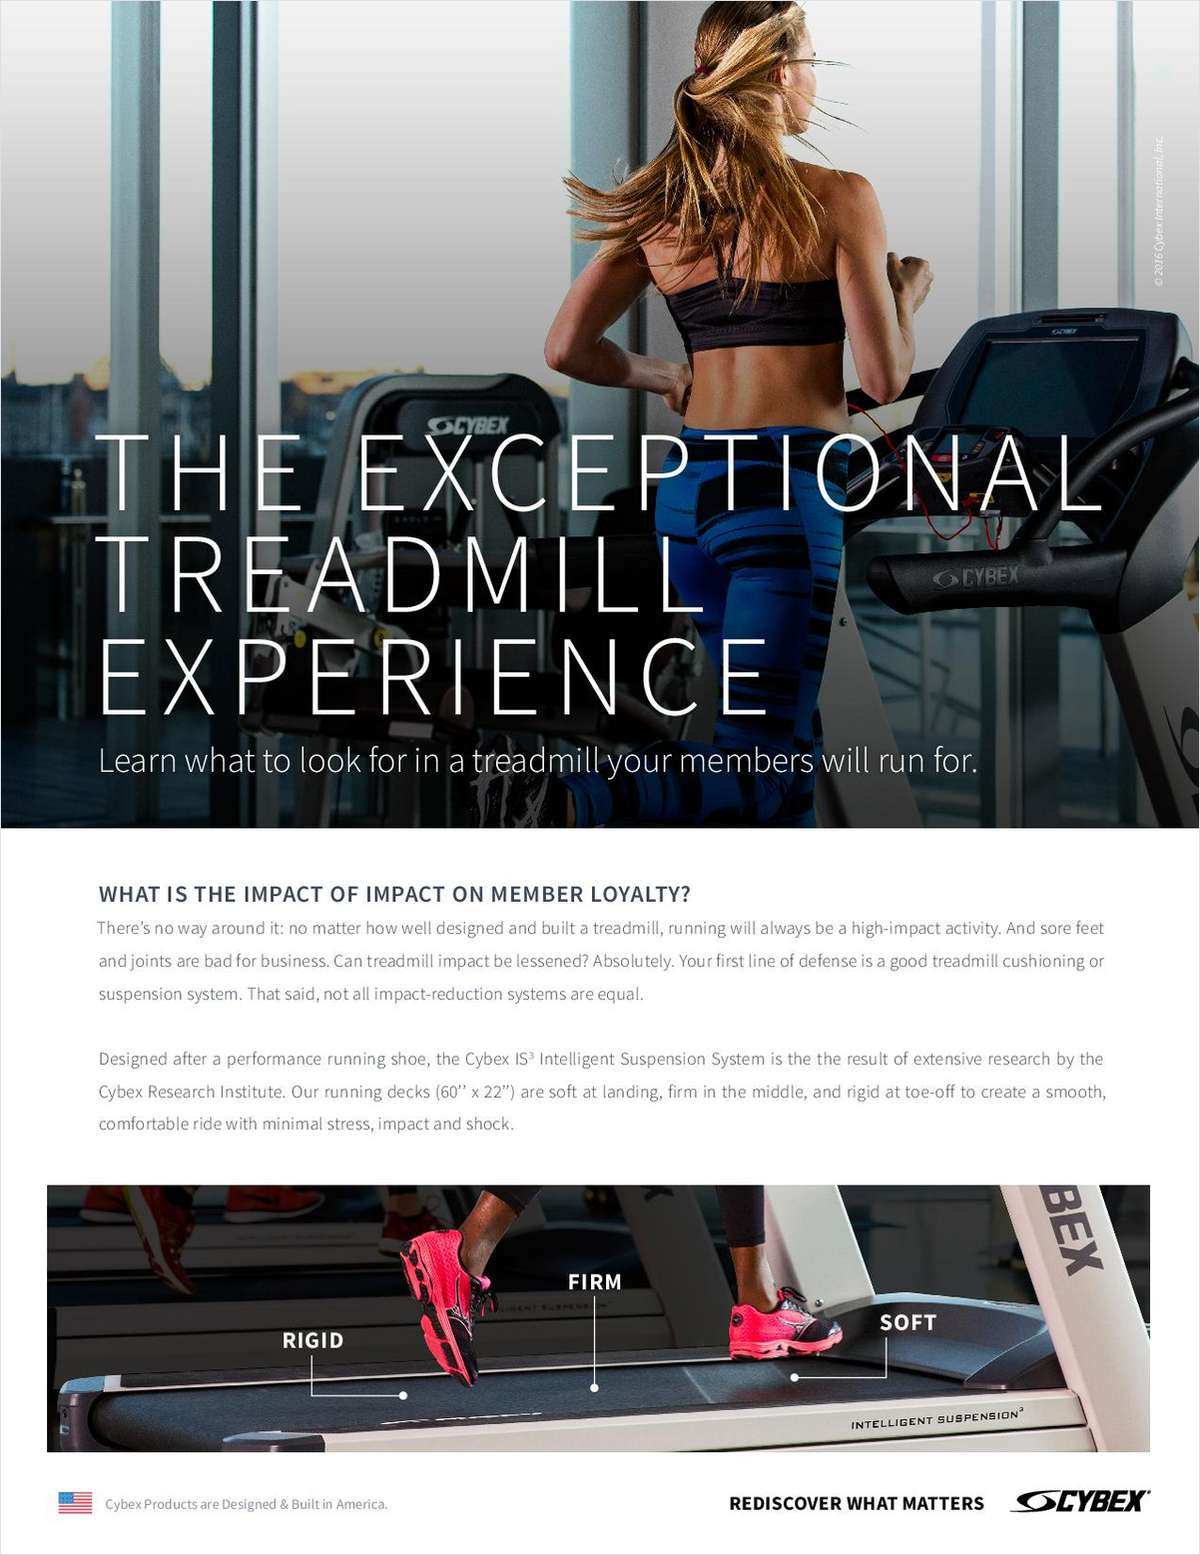 The Exceptional Treadmill Experience that Will Make Members Come Running